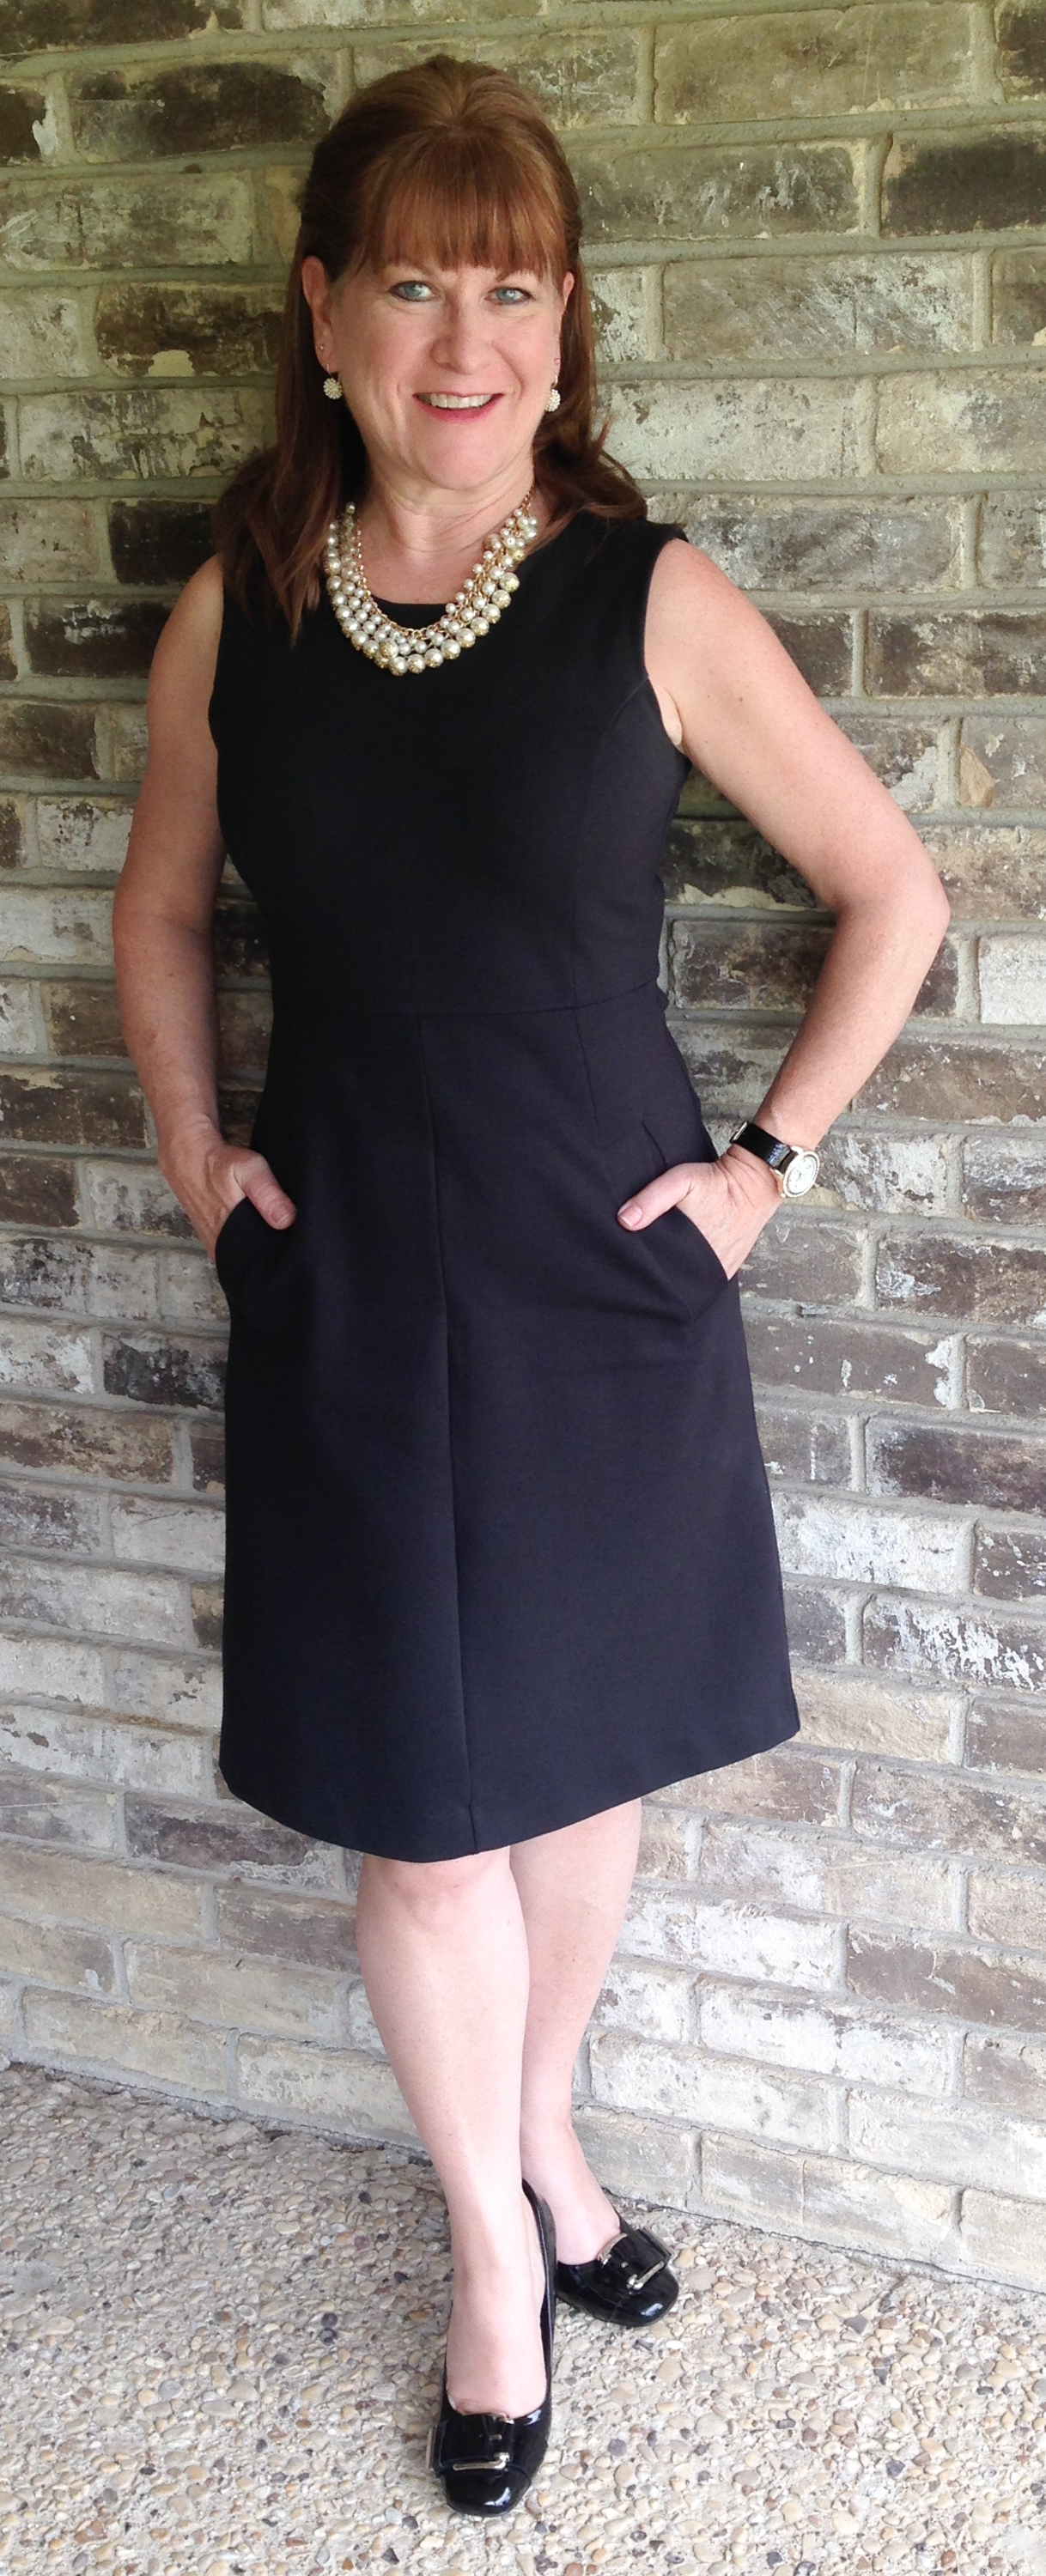 Clothing For Women Over 50 And Overweight